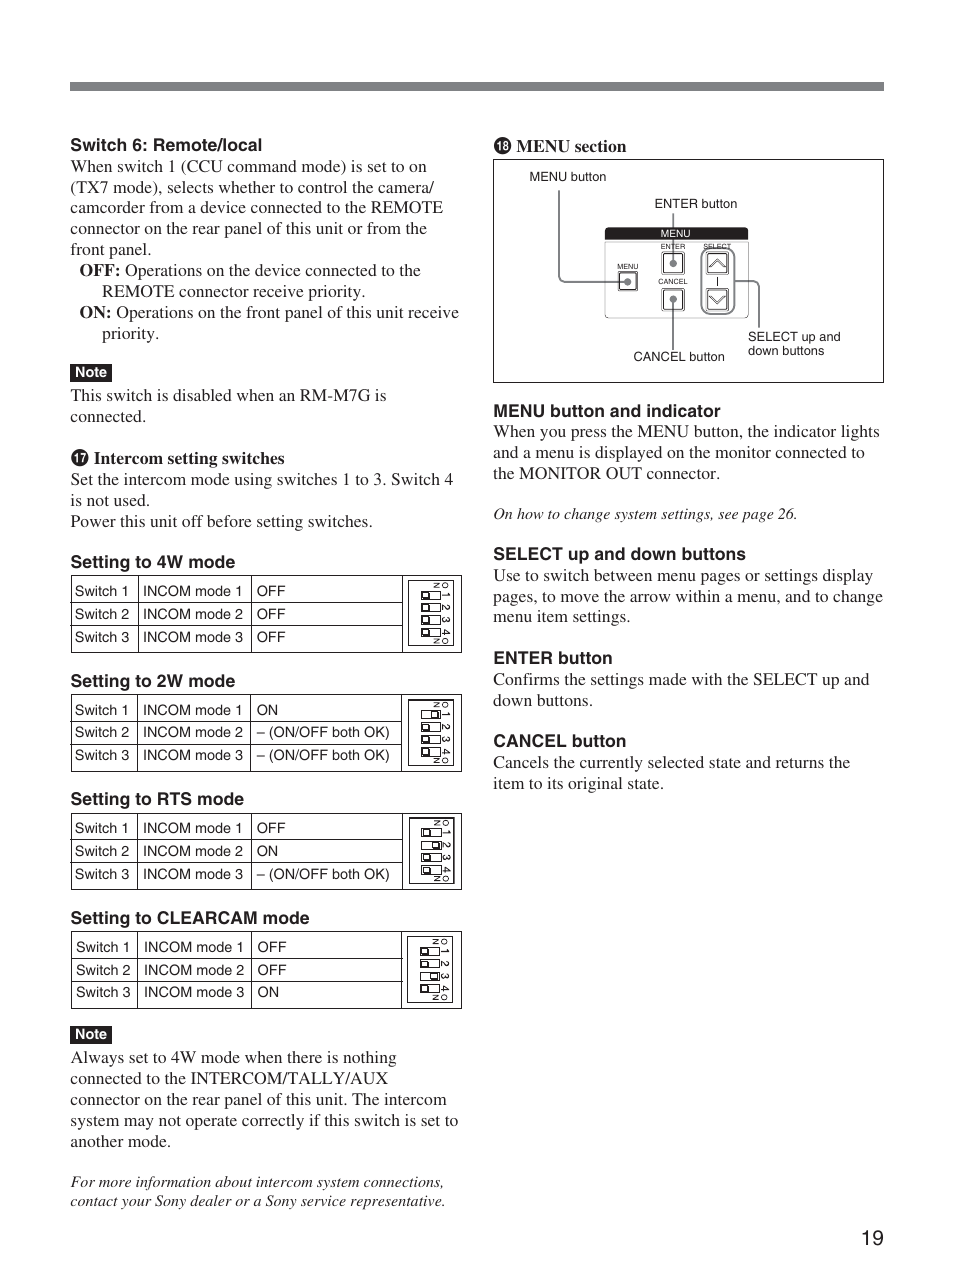 sony ccu d50 user manual page 19 31 original mode rh manualsdir com sony ca d50 service manual sony ca d50 service manual